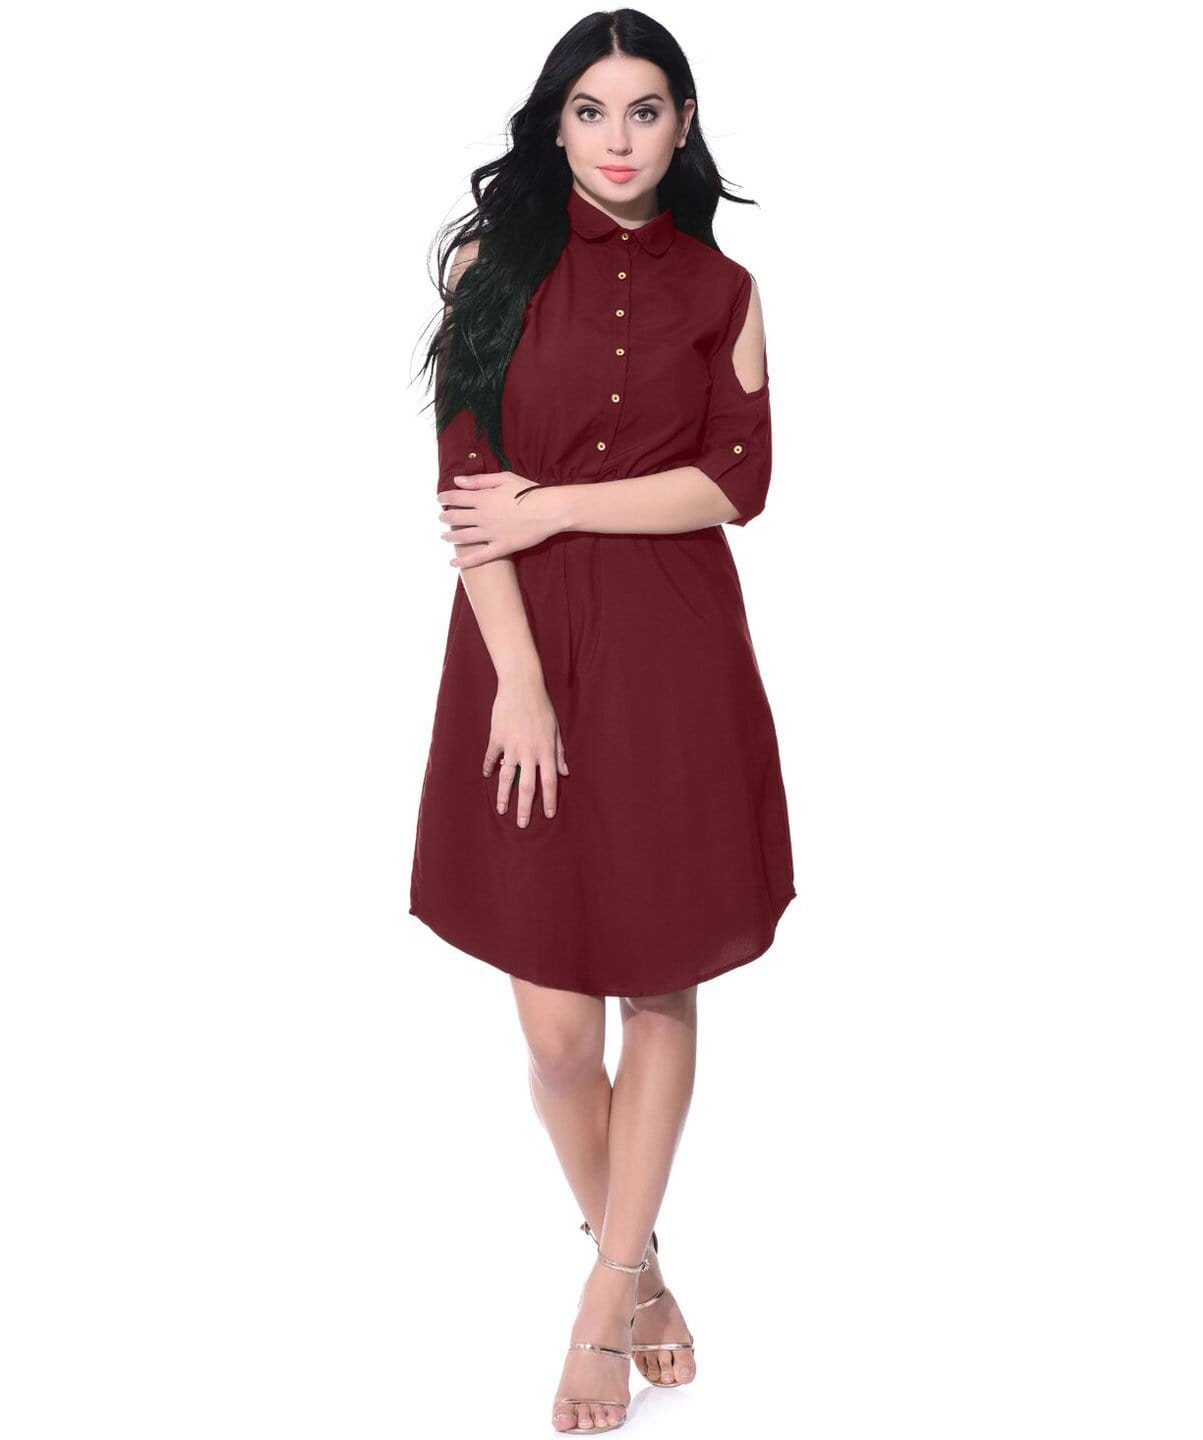 Solid Maroon Cold Shoulder Collared Dress - Uptownie